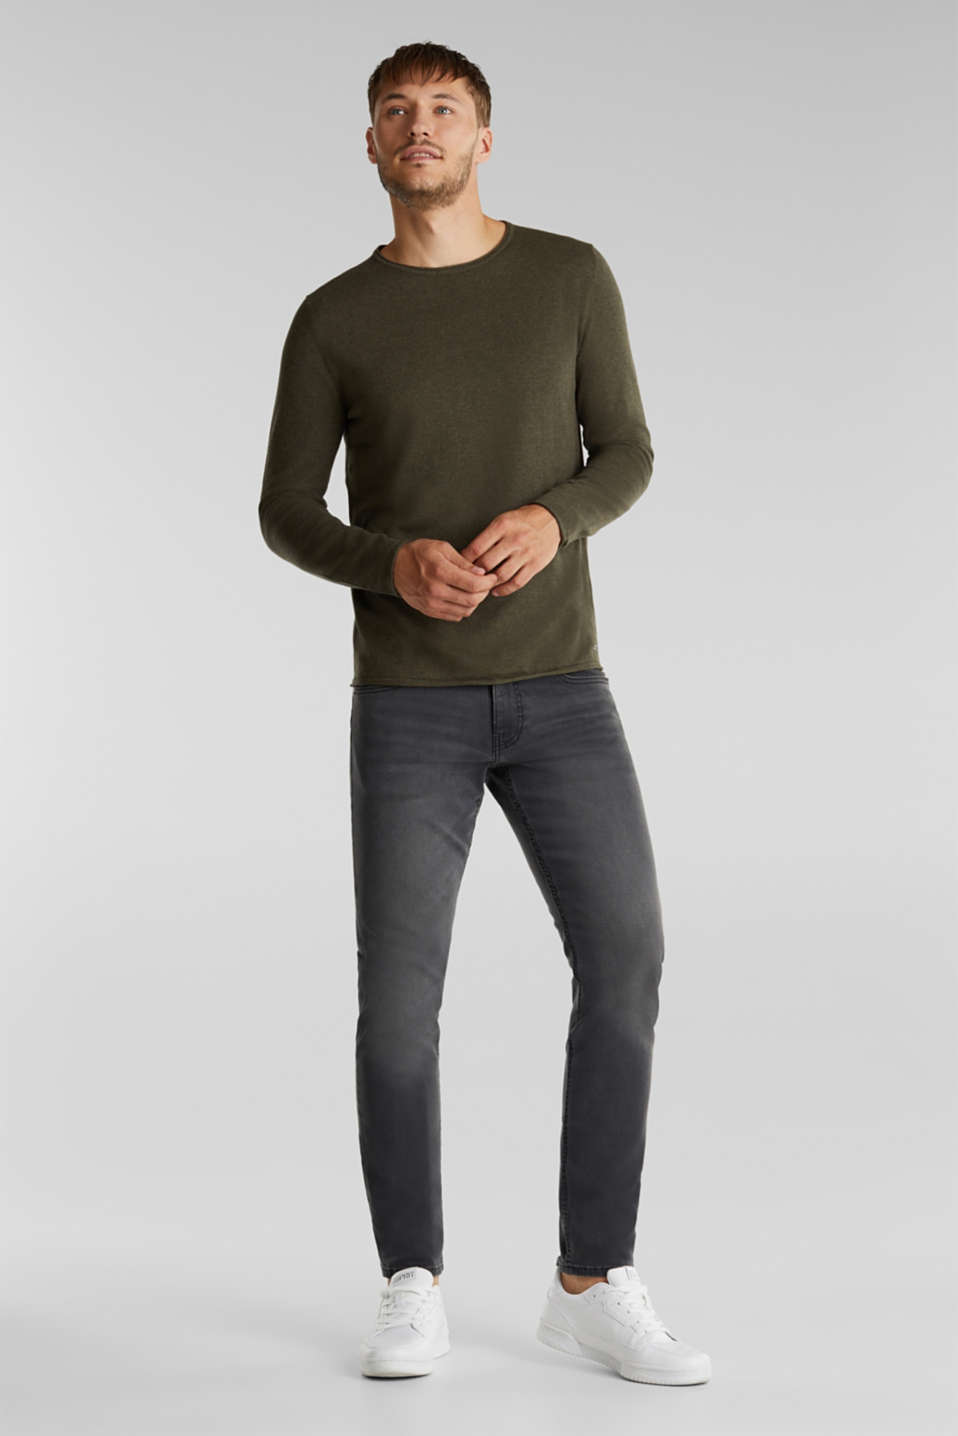 Fine knit cotton jumper, KHAKI GREEN, detail image number 1